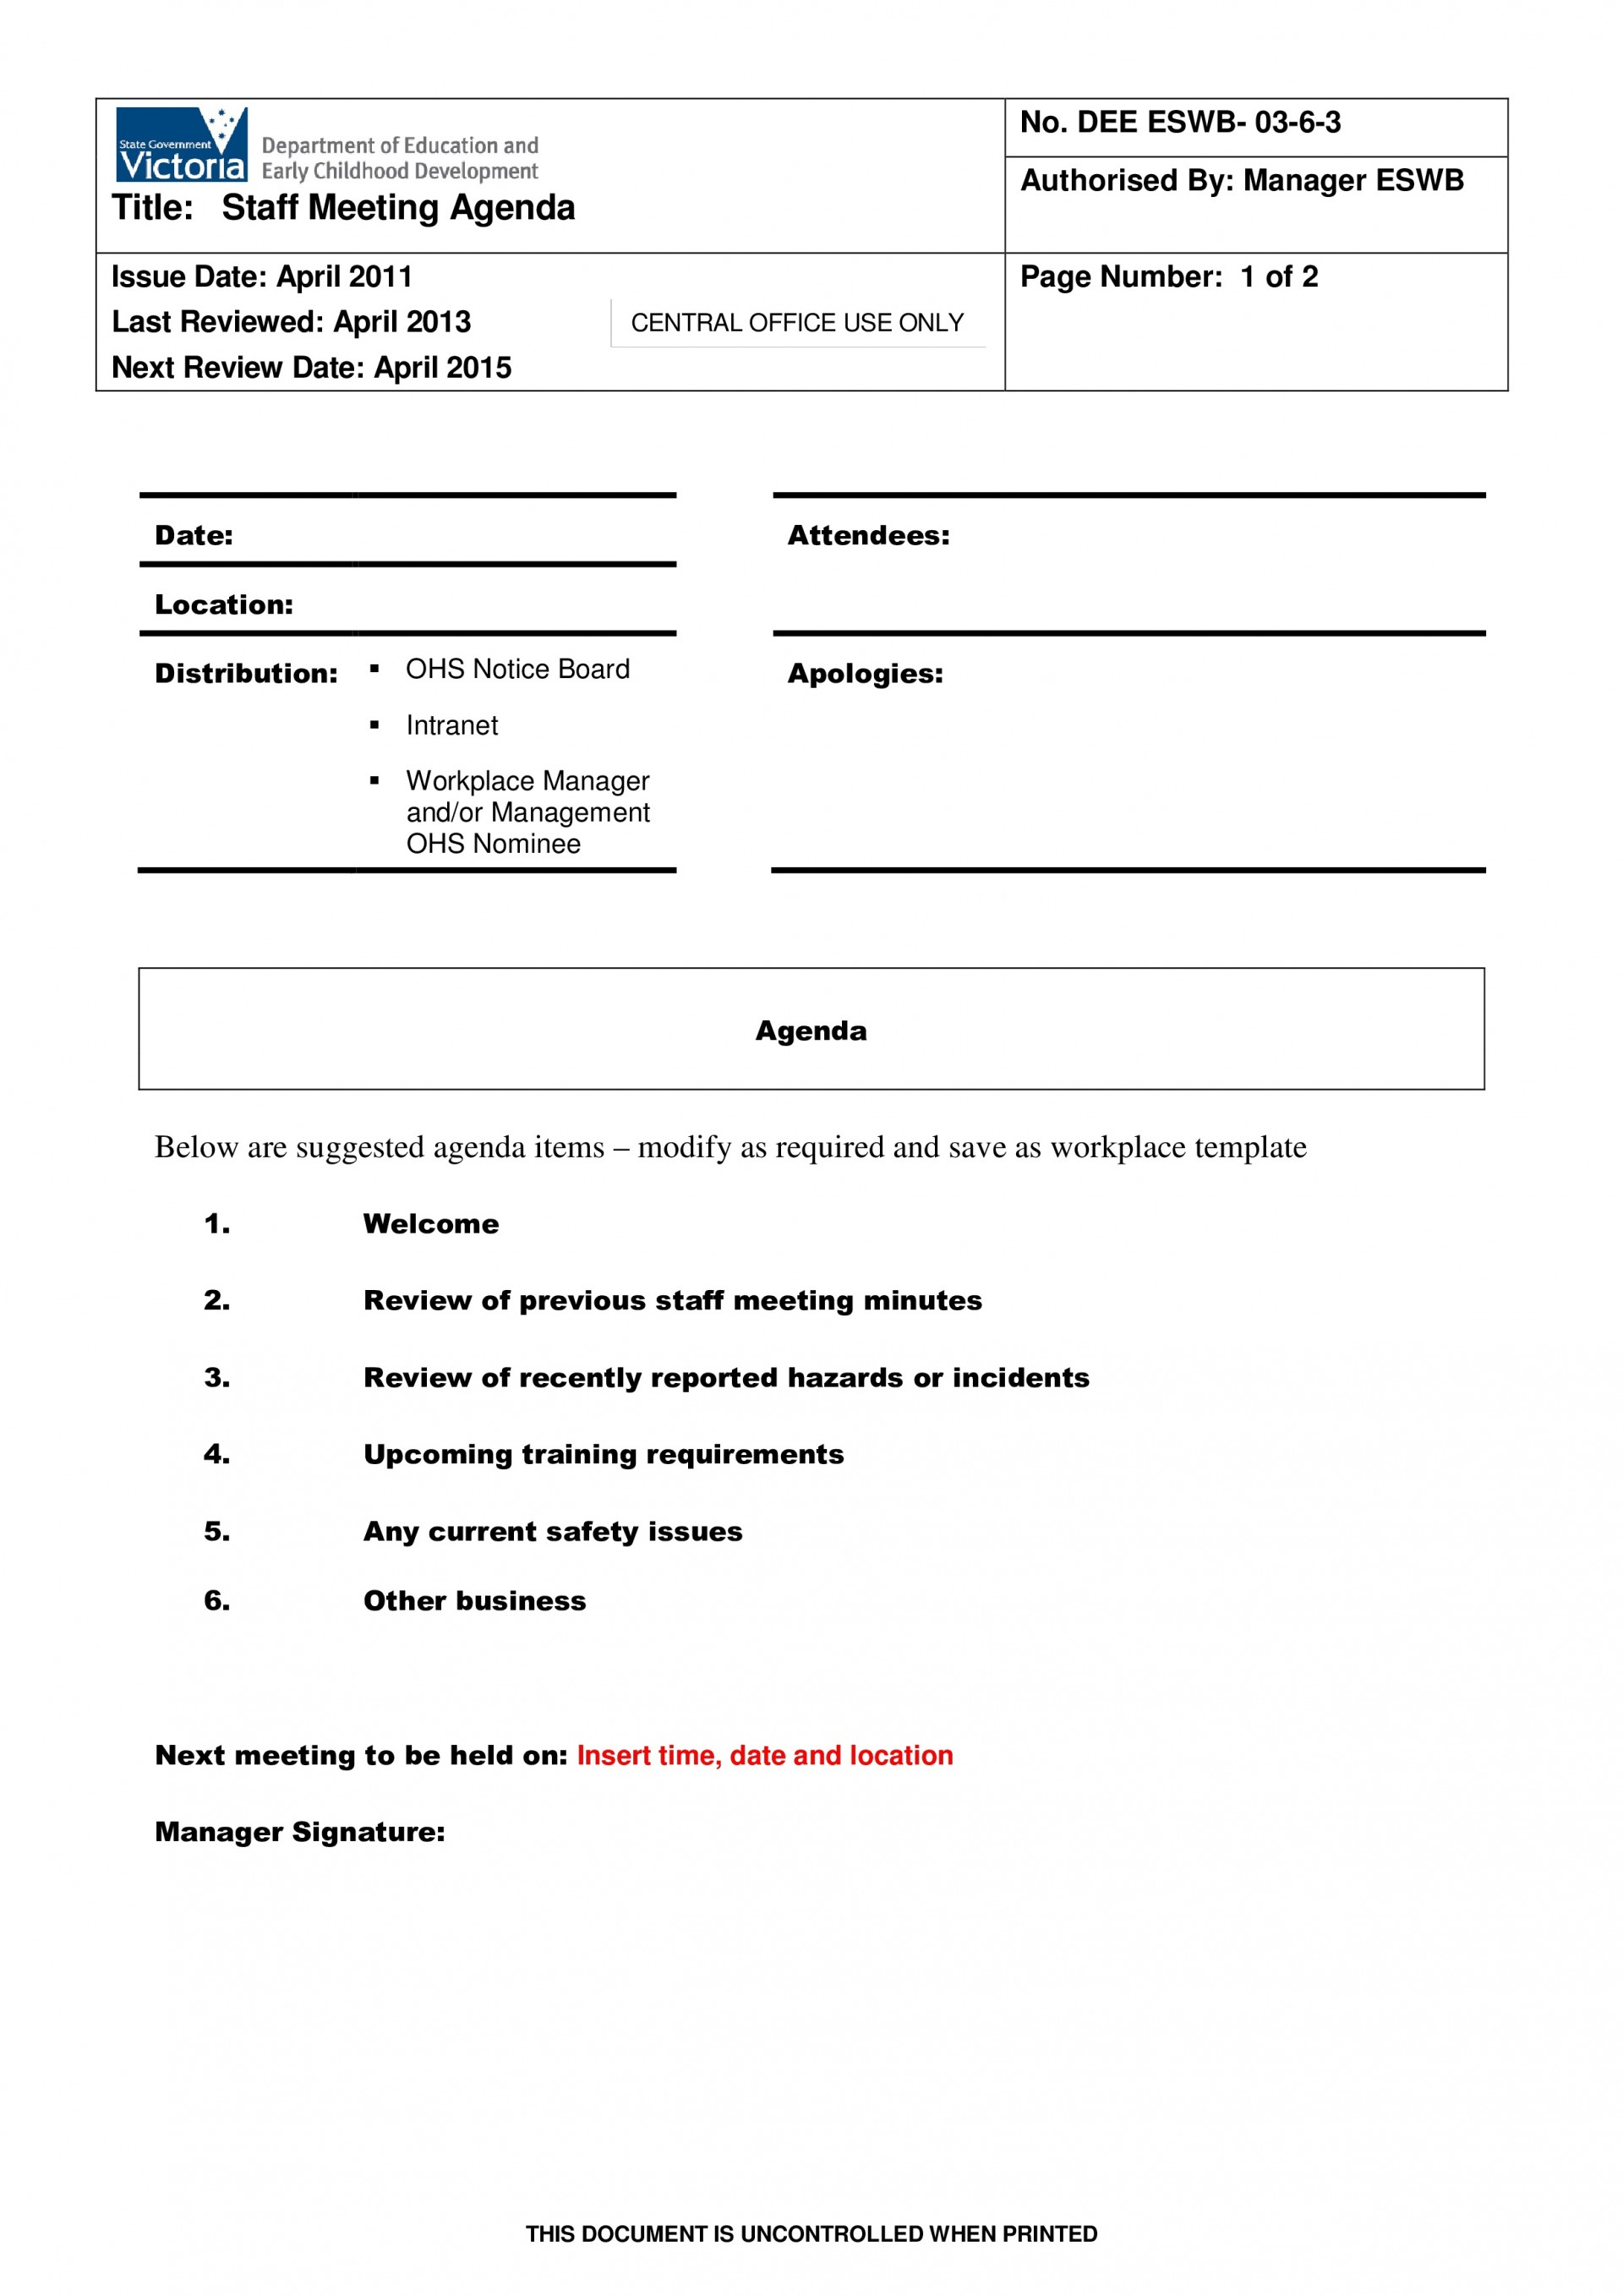 001 Excellent Staff Meeting Agenda Template Concept  Pdf Free1920